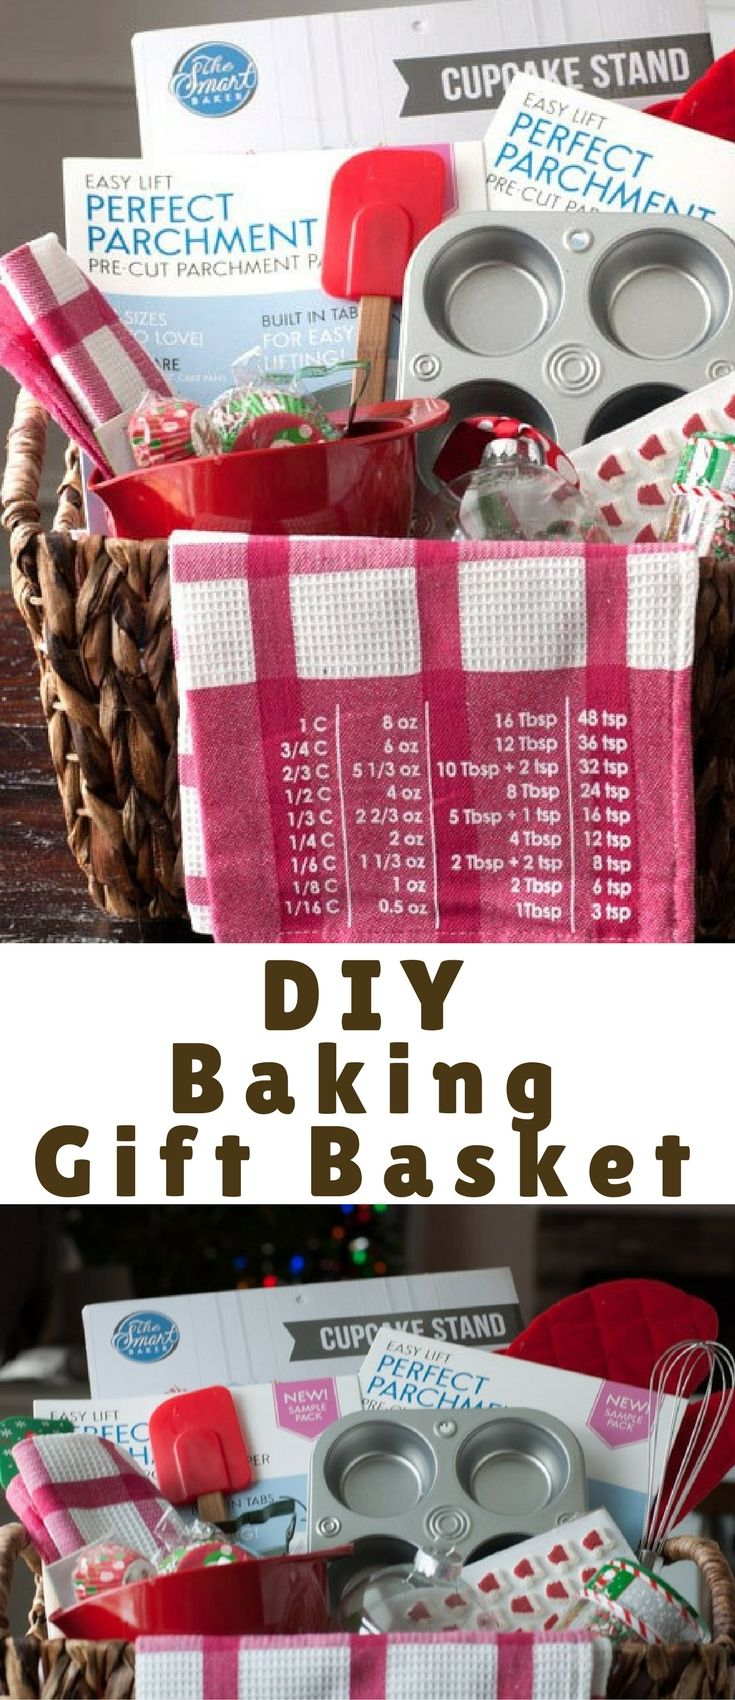 Making a DIY Baking Gift Basket is easy and fun. A great gift for friends who love baking and being in the kitchen.